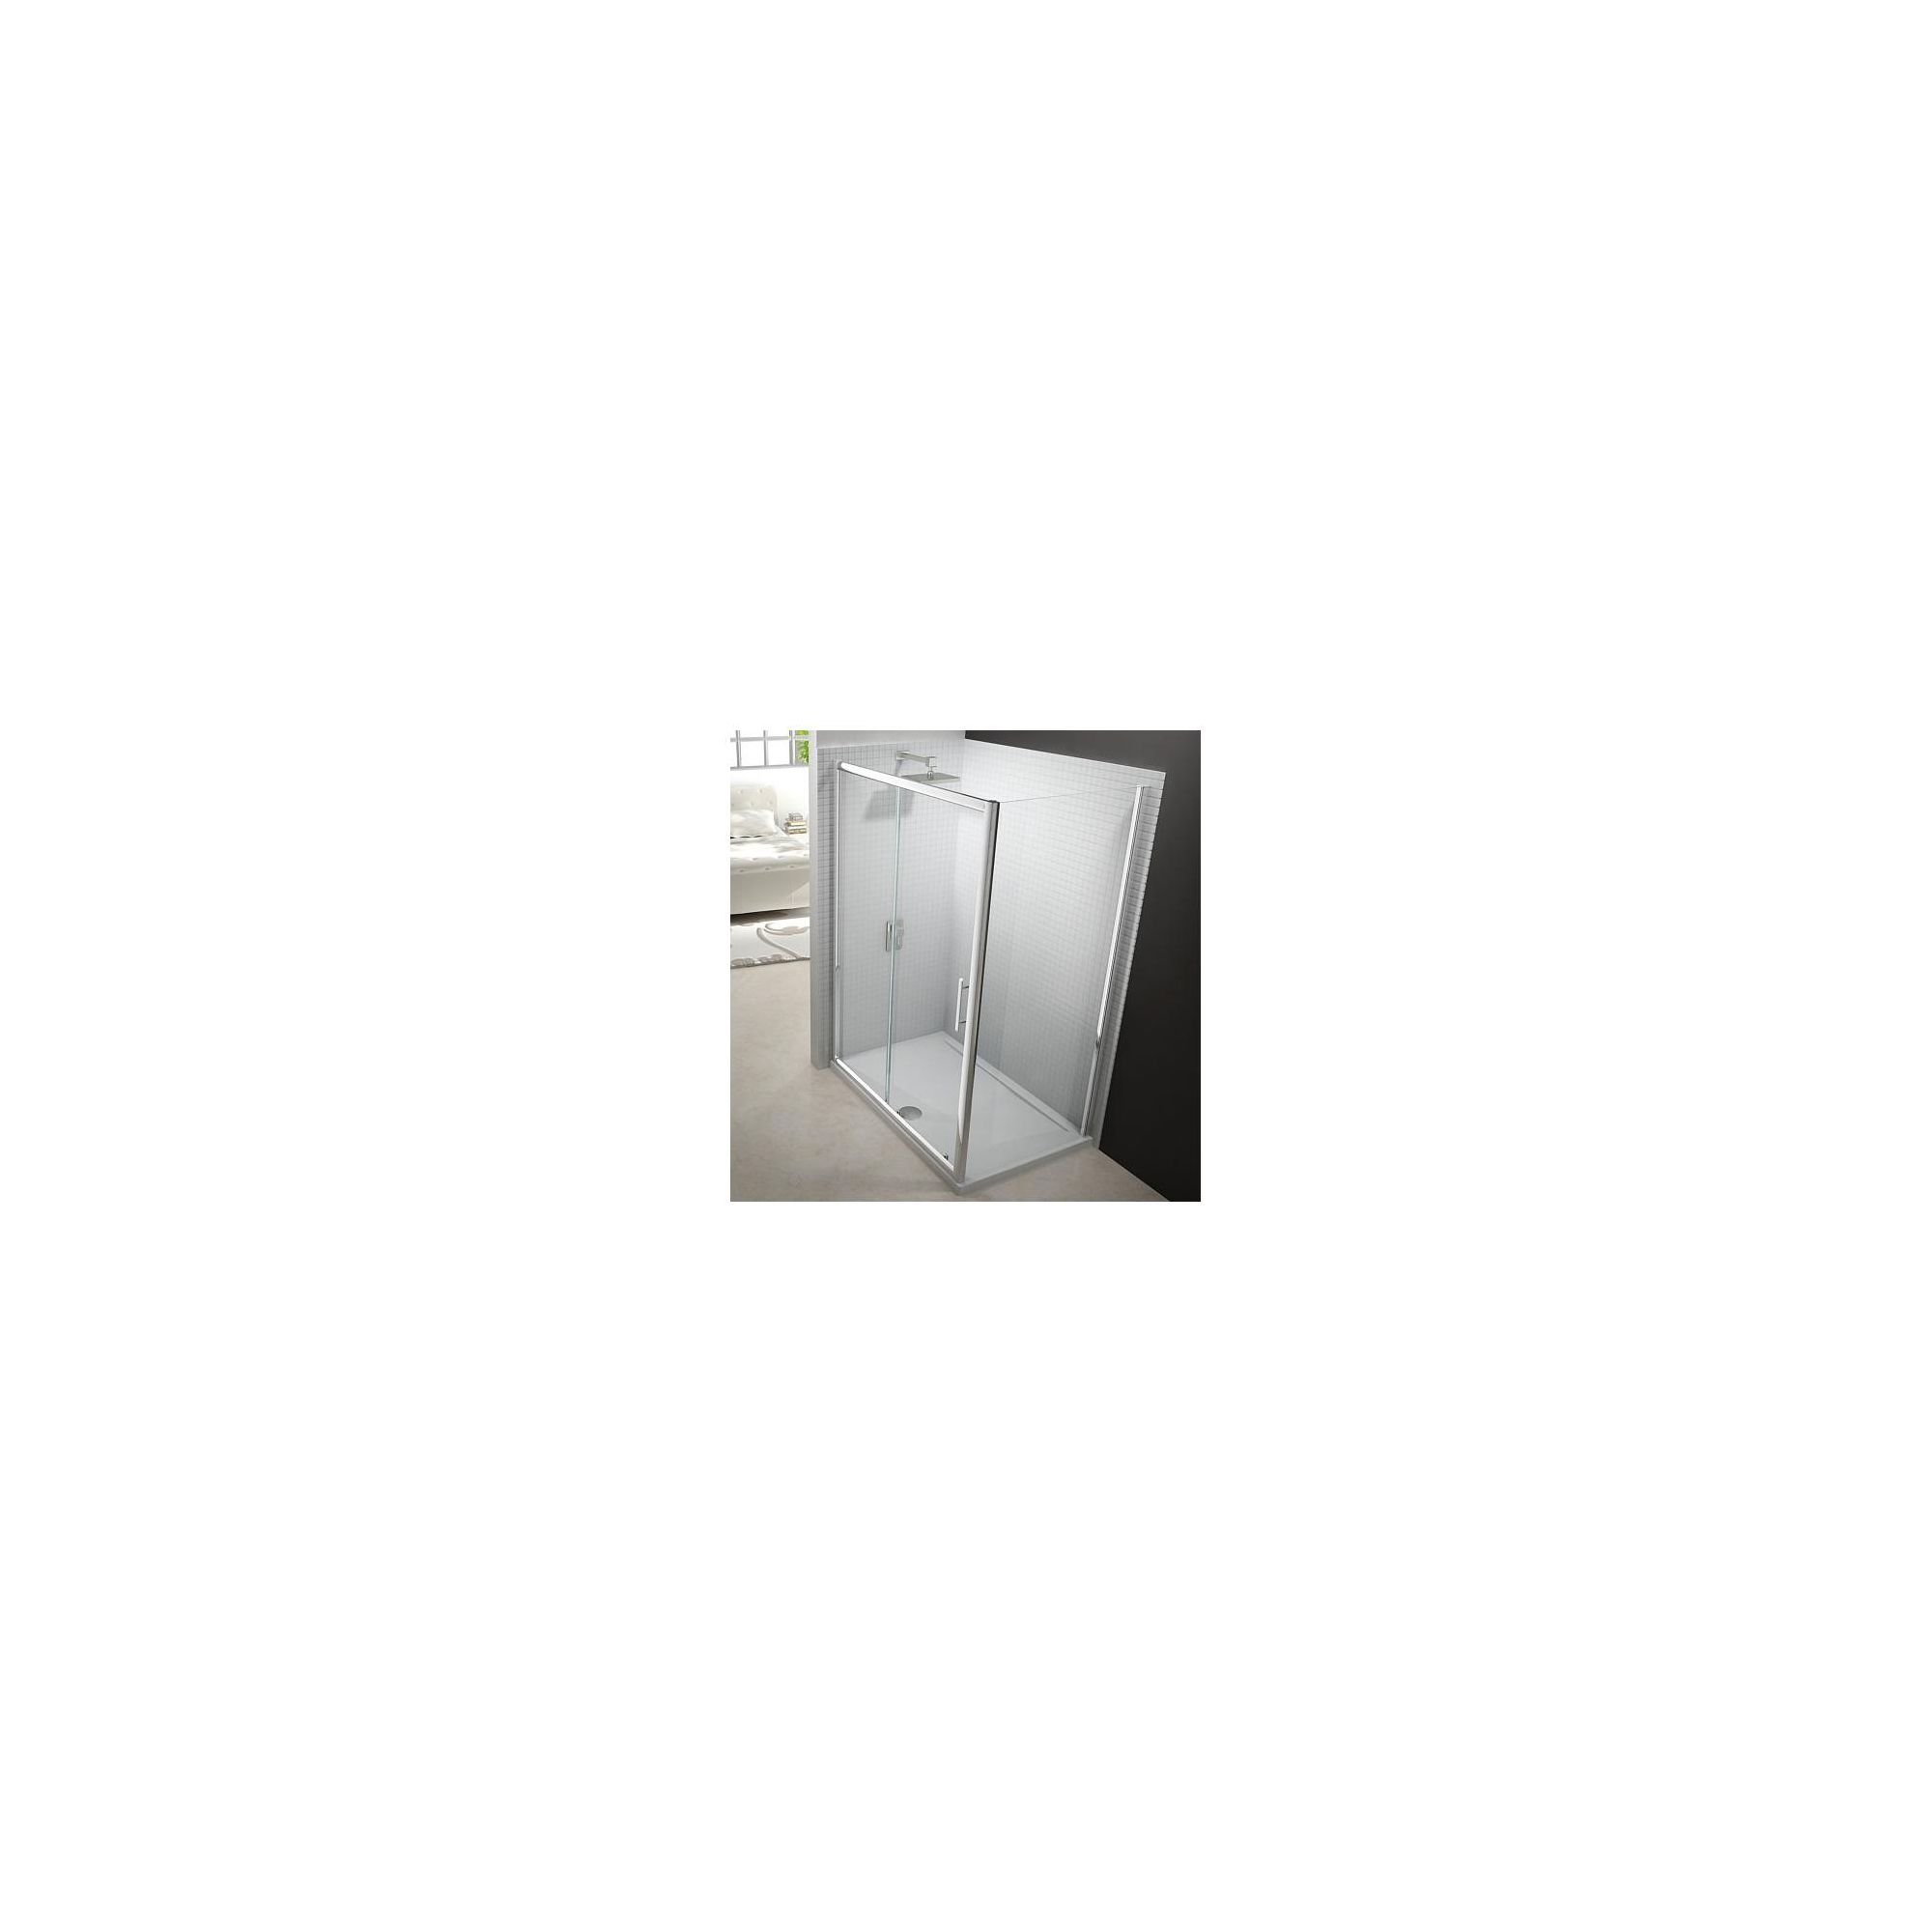 Merlyn Series 6 Sliding Shower Door, 1700mm Wide, Chrome Frame, 6mm Glass at Tesco Direct